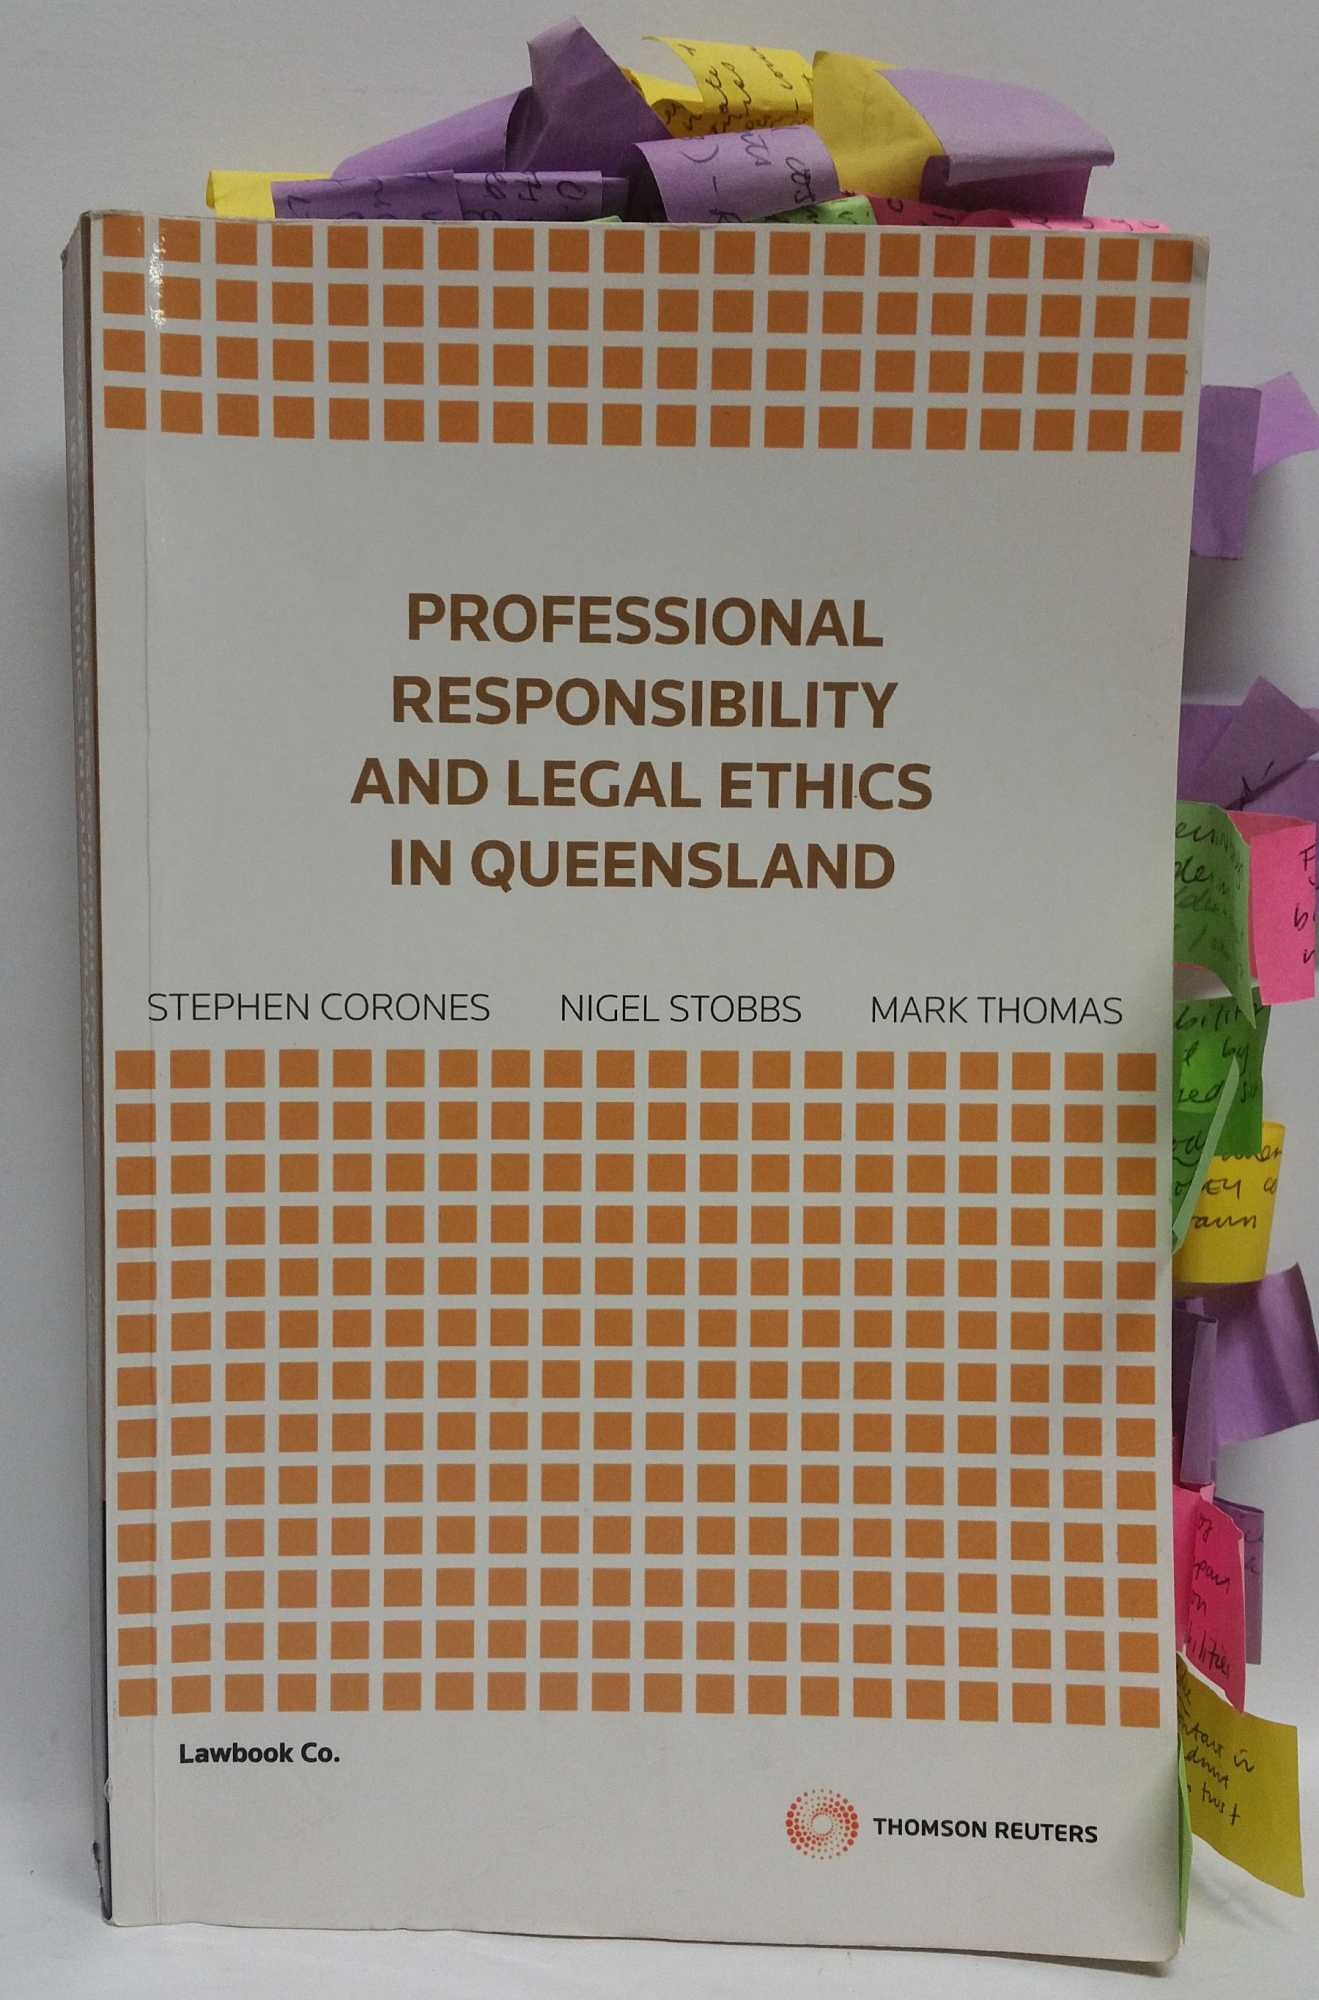 STEPHEN CORONES; NIGEL STOBBS; MARK THOMAS - Professional Responsibility and Legal Ethics in Queensland